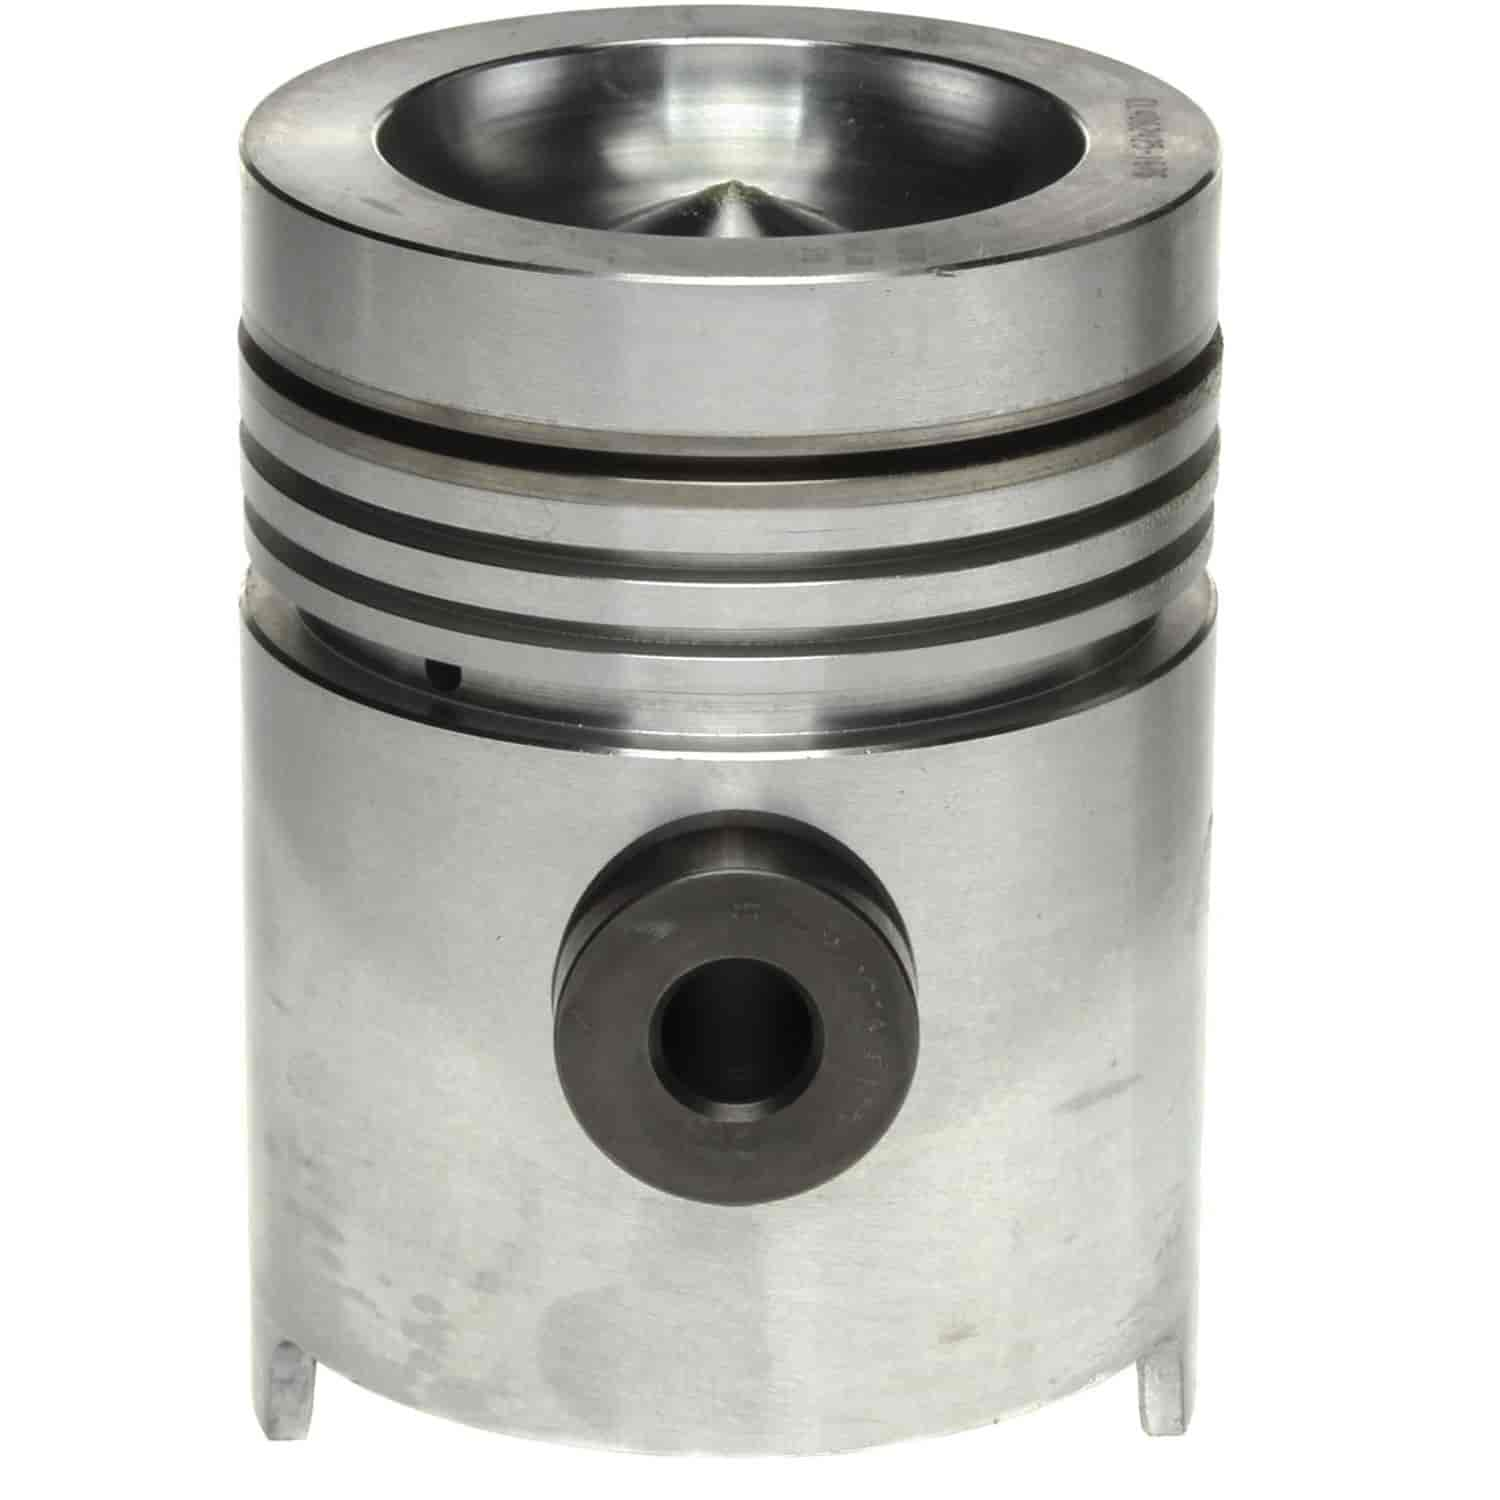 Allis Chalmers Piston Sleeves : Clevite mahle cylinder sleeve assembly allis